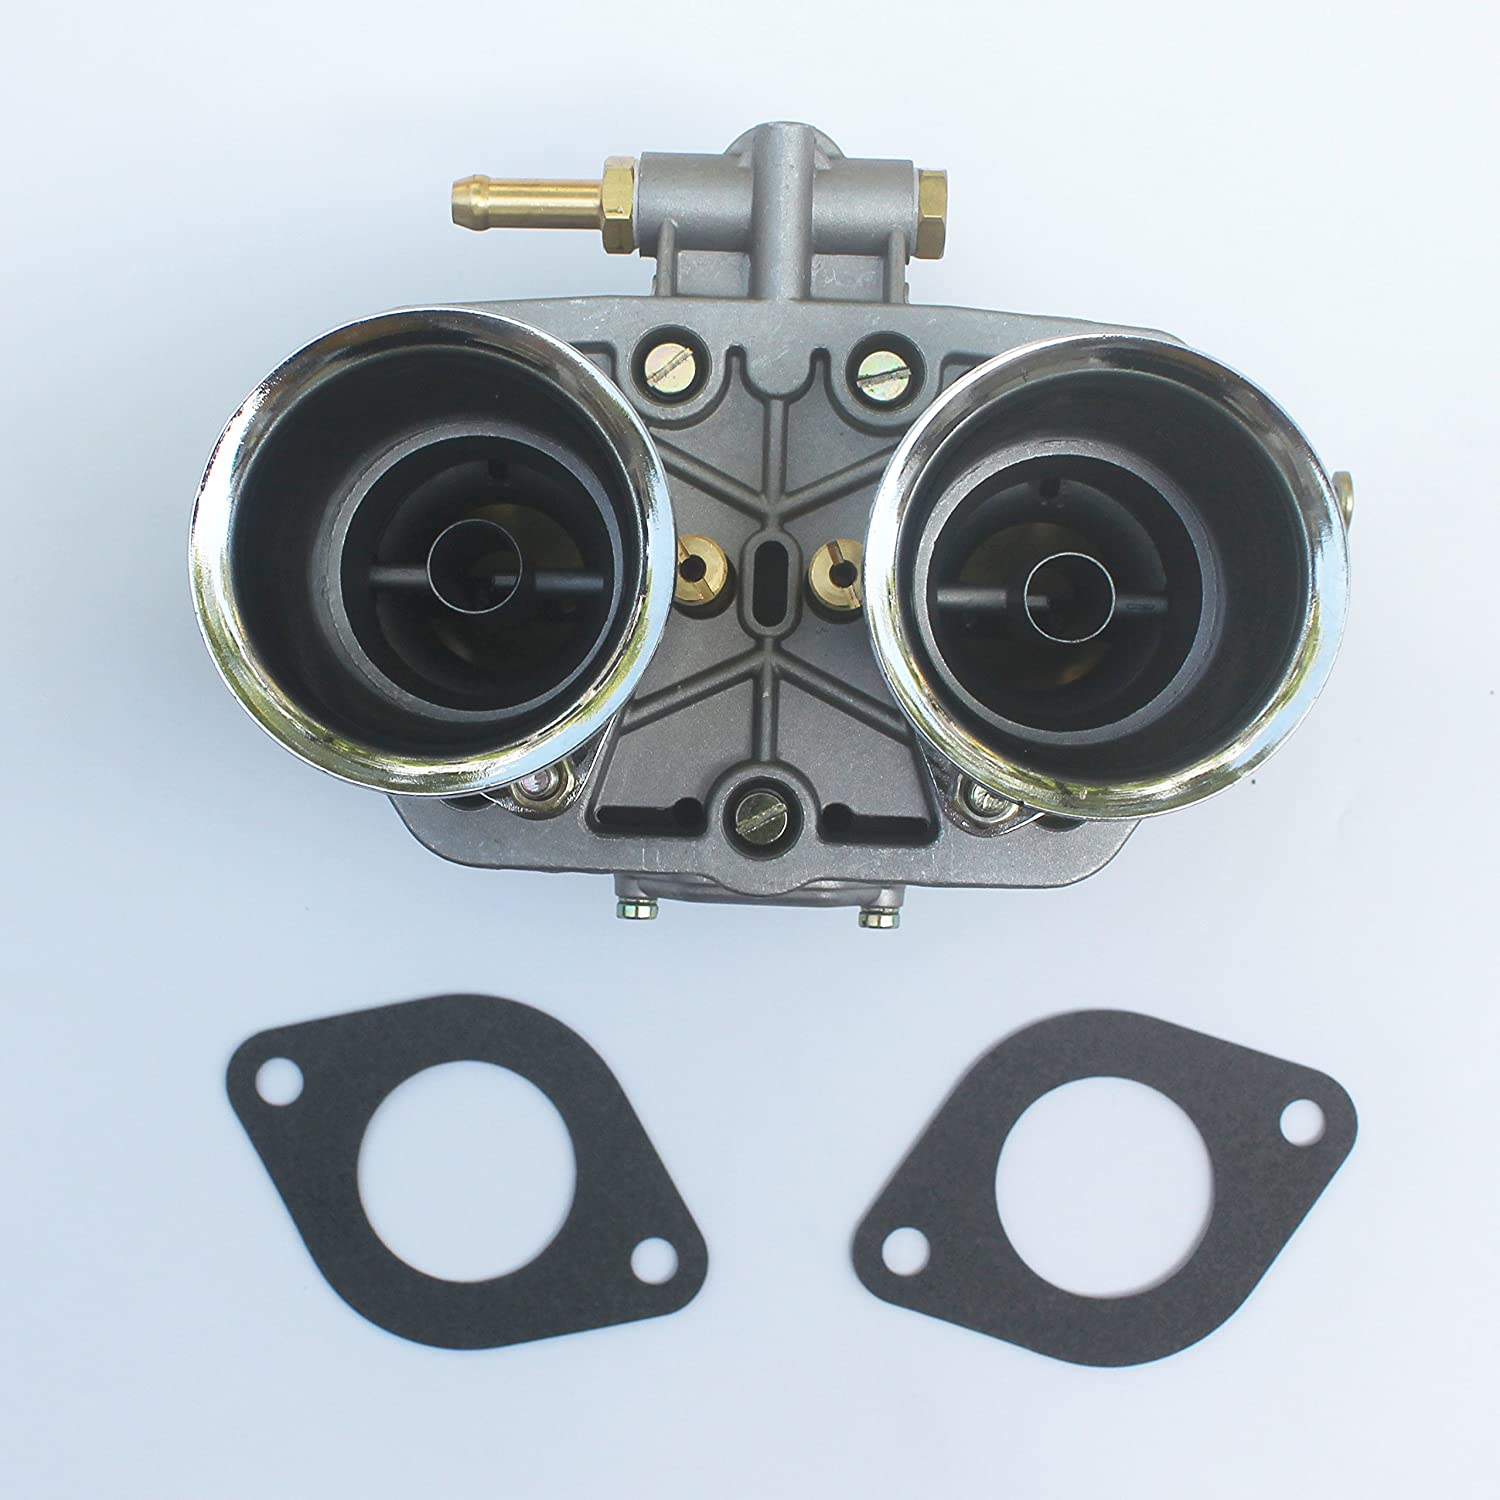 KIPA Carburetor For Weber 48 IDA IDF 48mm With Air Horns OEM # 19030.015 19030018 19030.018 19030015 19030021 used on Porsche VW Jaguar Ford 351 Small Block Chevys American V8 engines with Gaskets